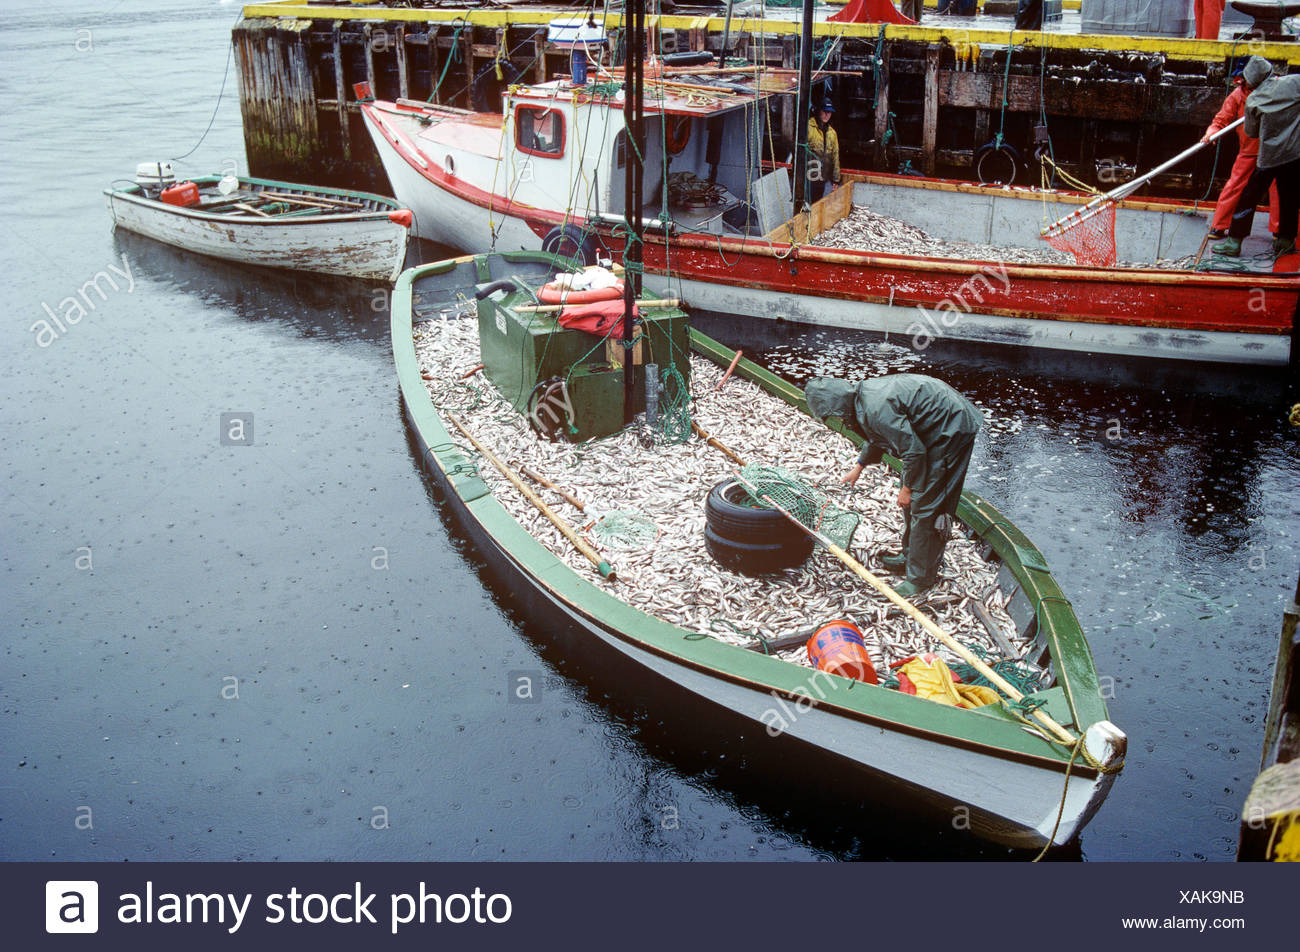 Boat loaded with, capelin, Cape Broyle, Newfoundland, Canada  Commercial Fishery - Stock Image